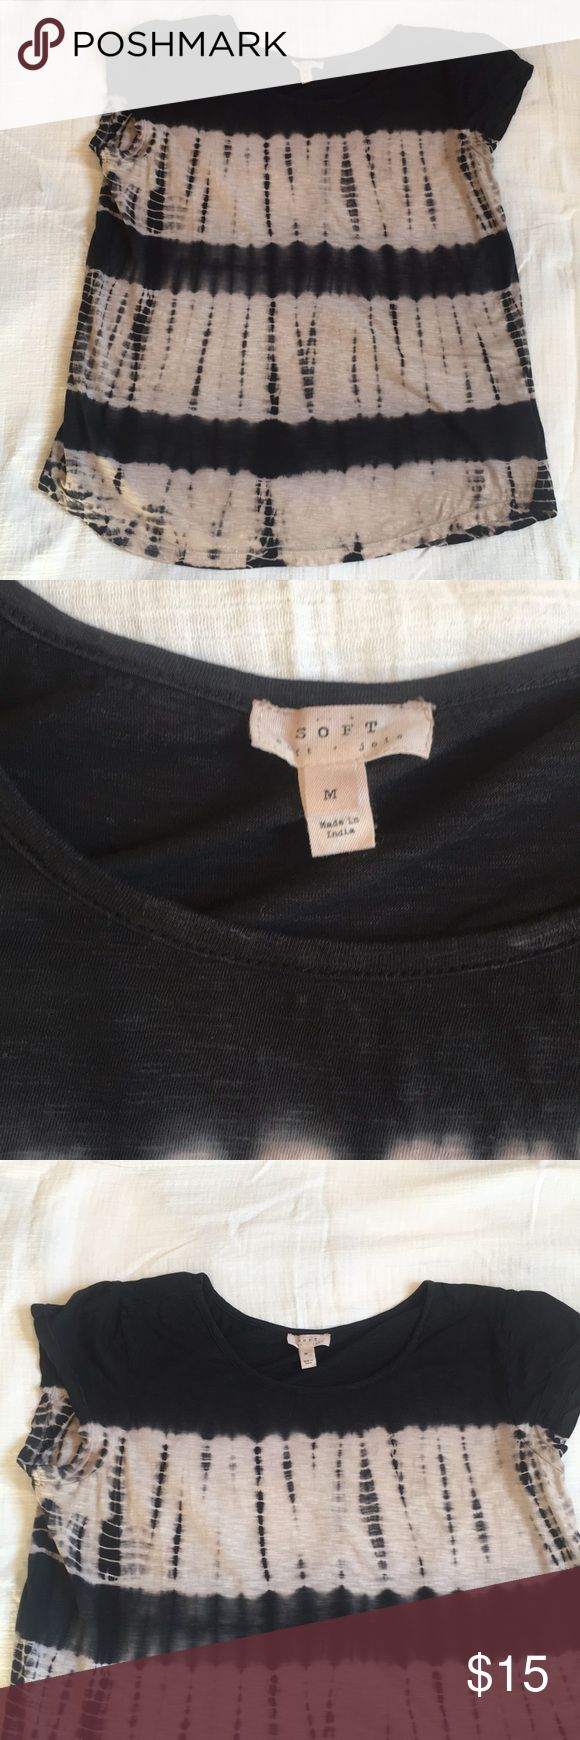 Soft Joie Tie-dye top Used maybe twice. Soft Joie tie-dye top in good condition. Short sleeves and the colors are black and cream. Price reflects a tiny hole that camouflages with print and honestly goes unnoticed. See last picture Soft Joie Tops